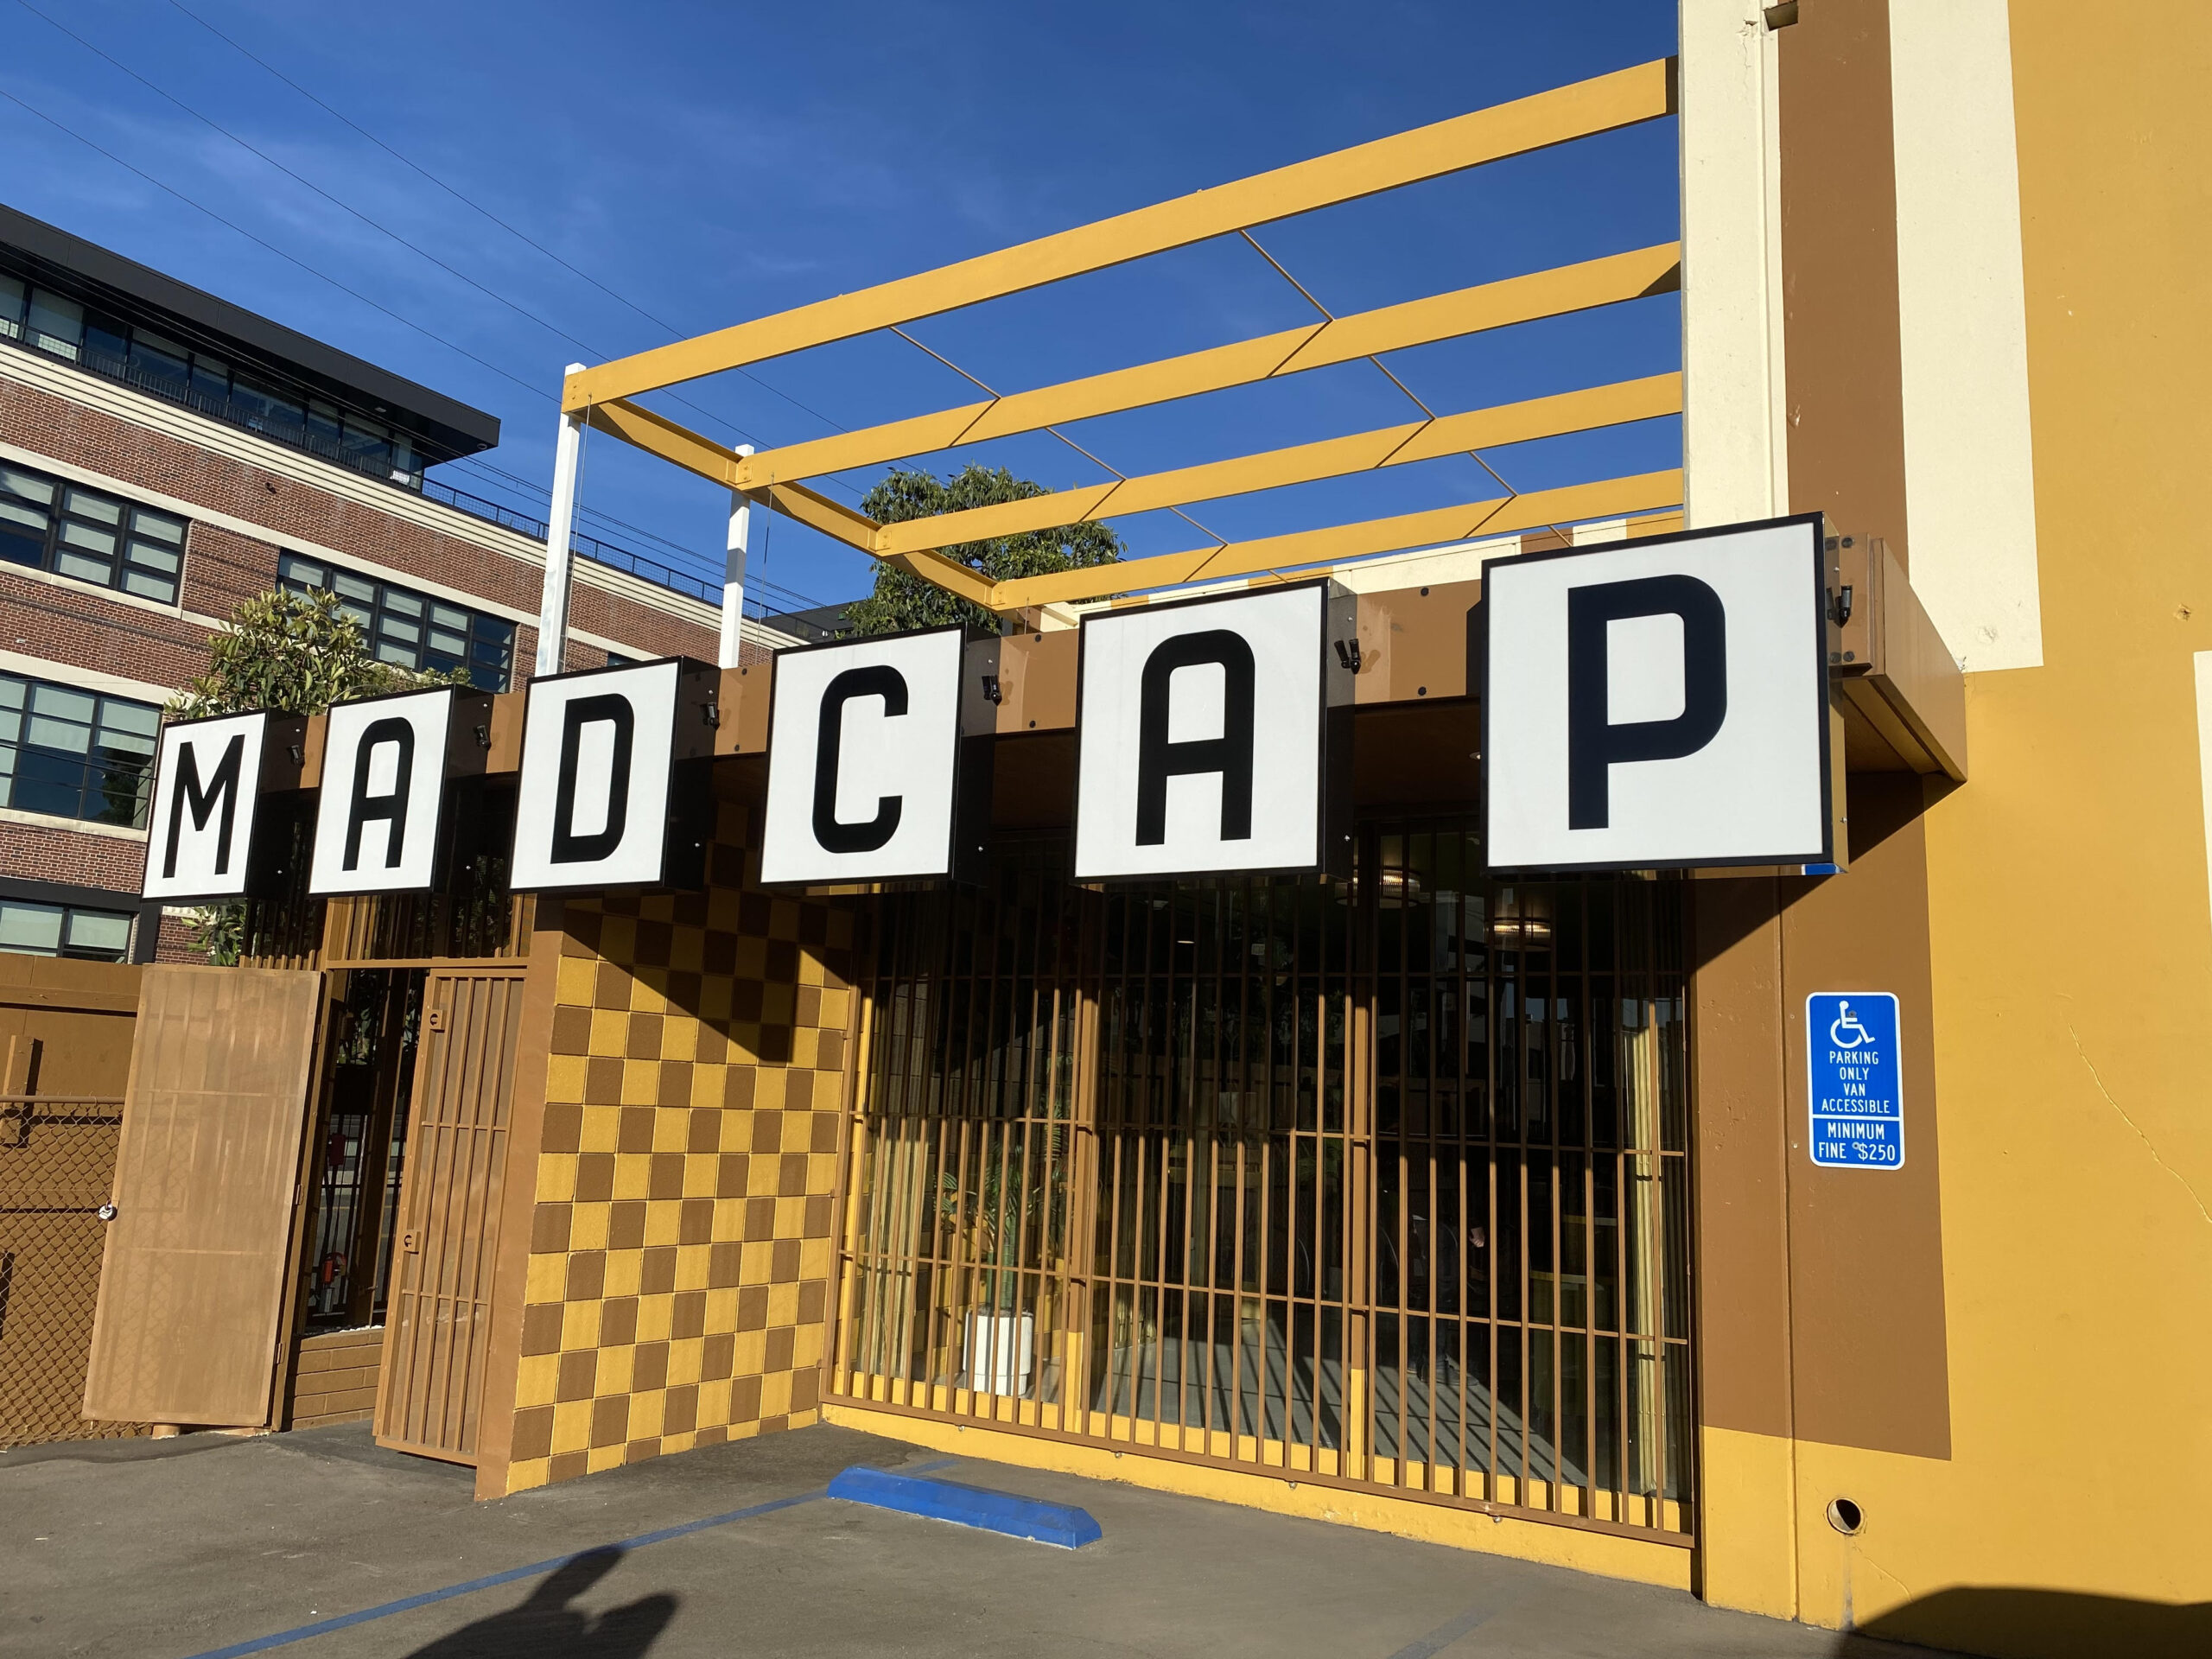 [Immersive Experience] The Madcap Motel